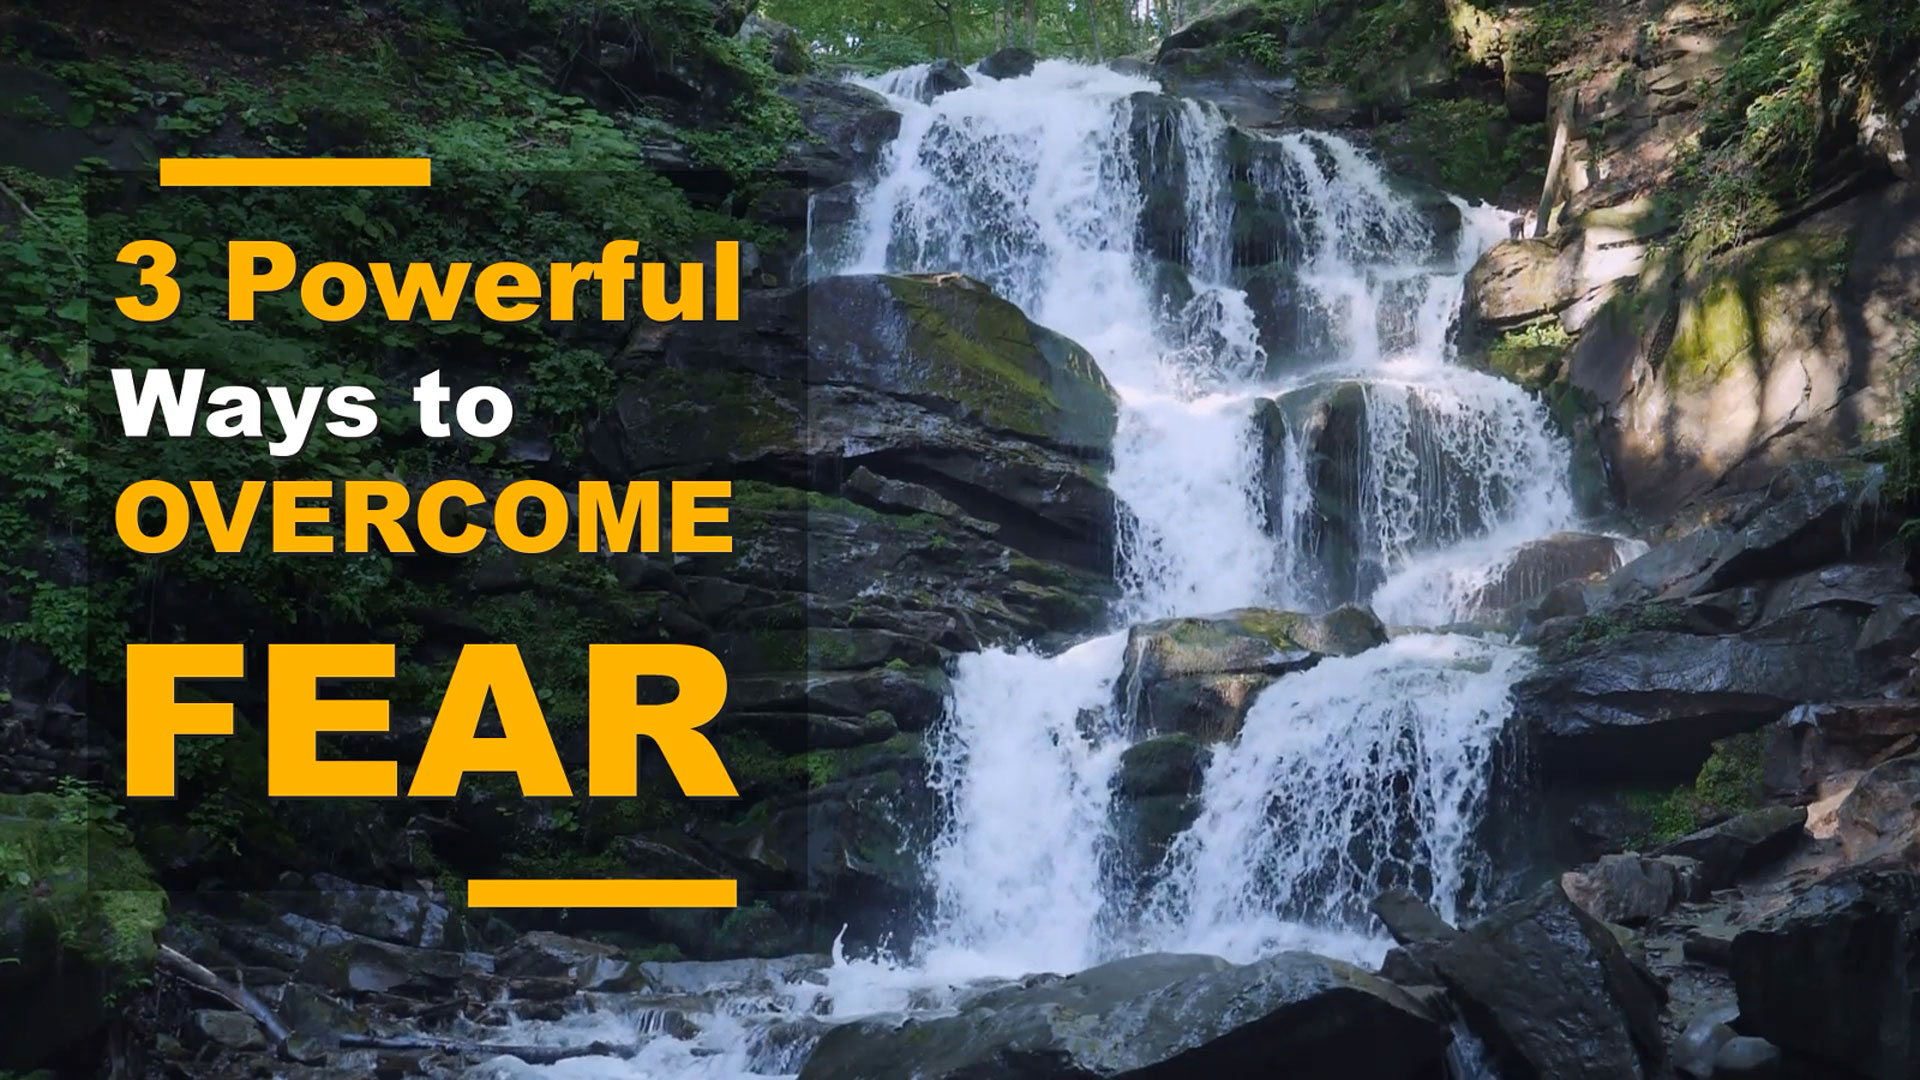 3 Powerful Ways to Overcome Fear